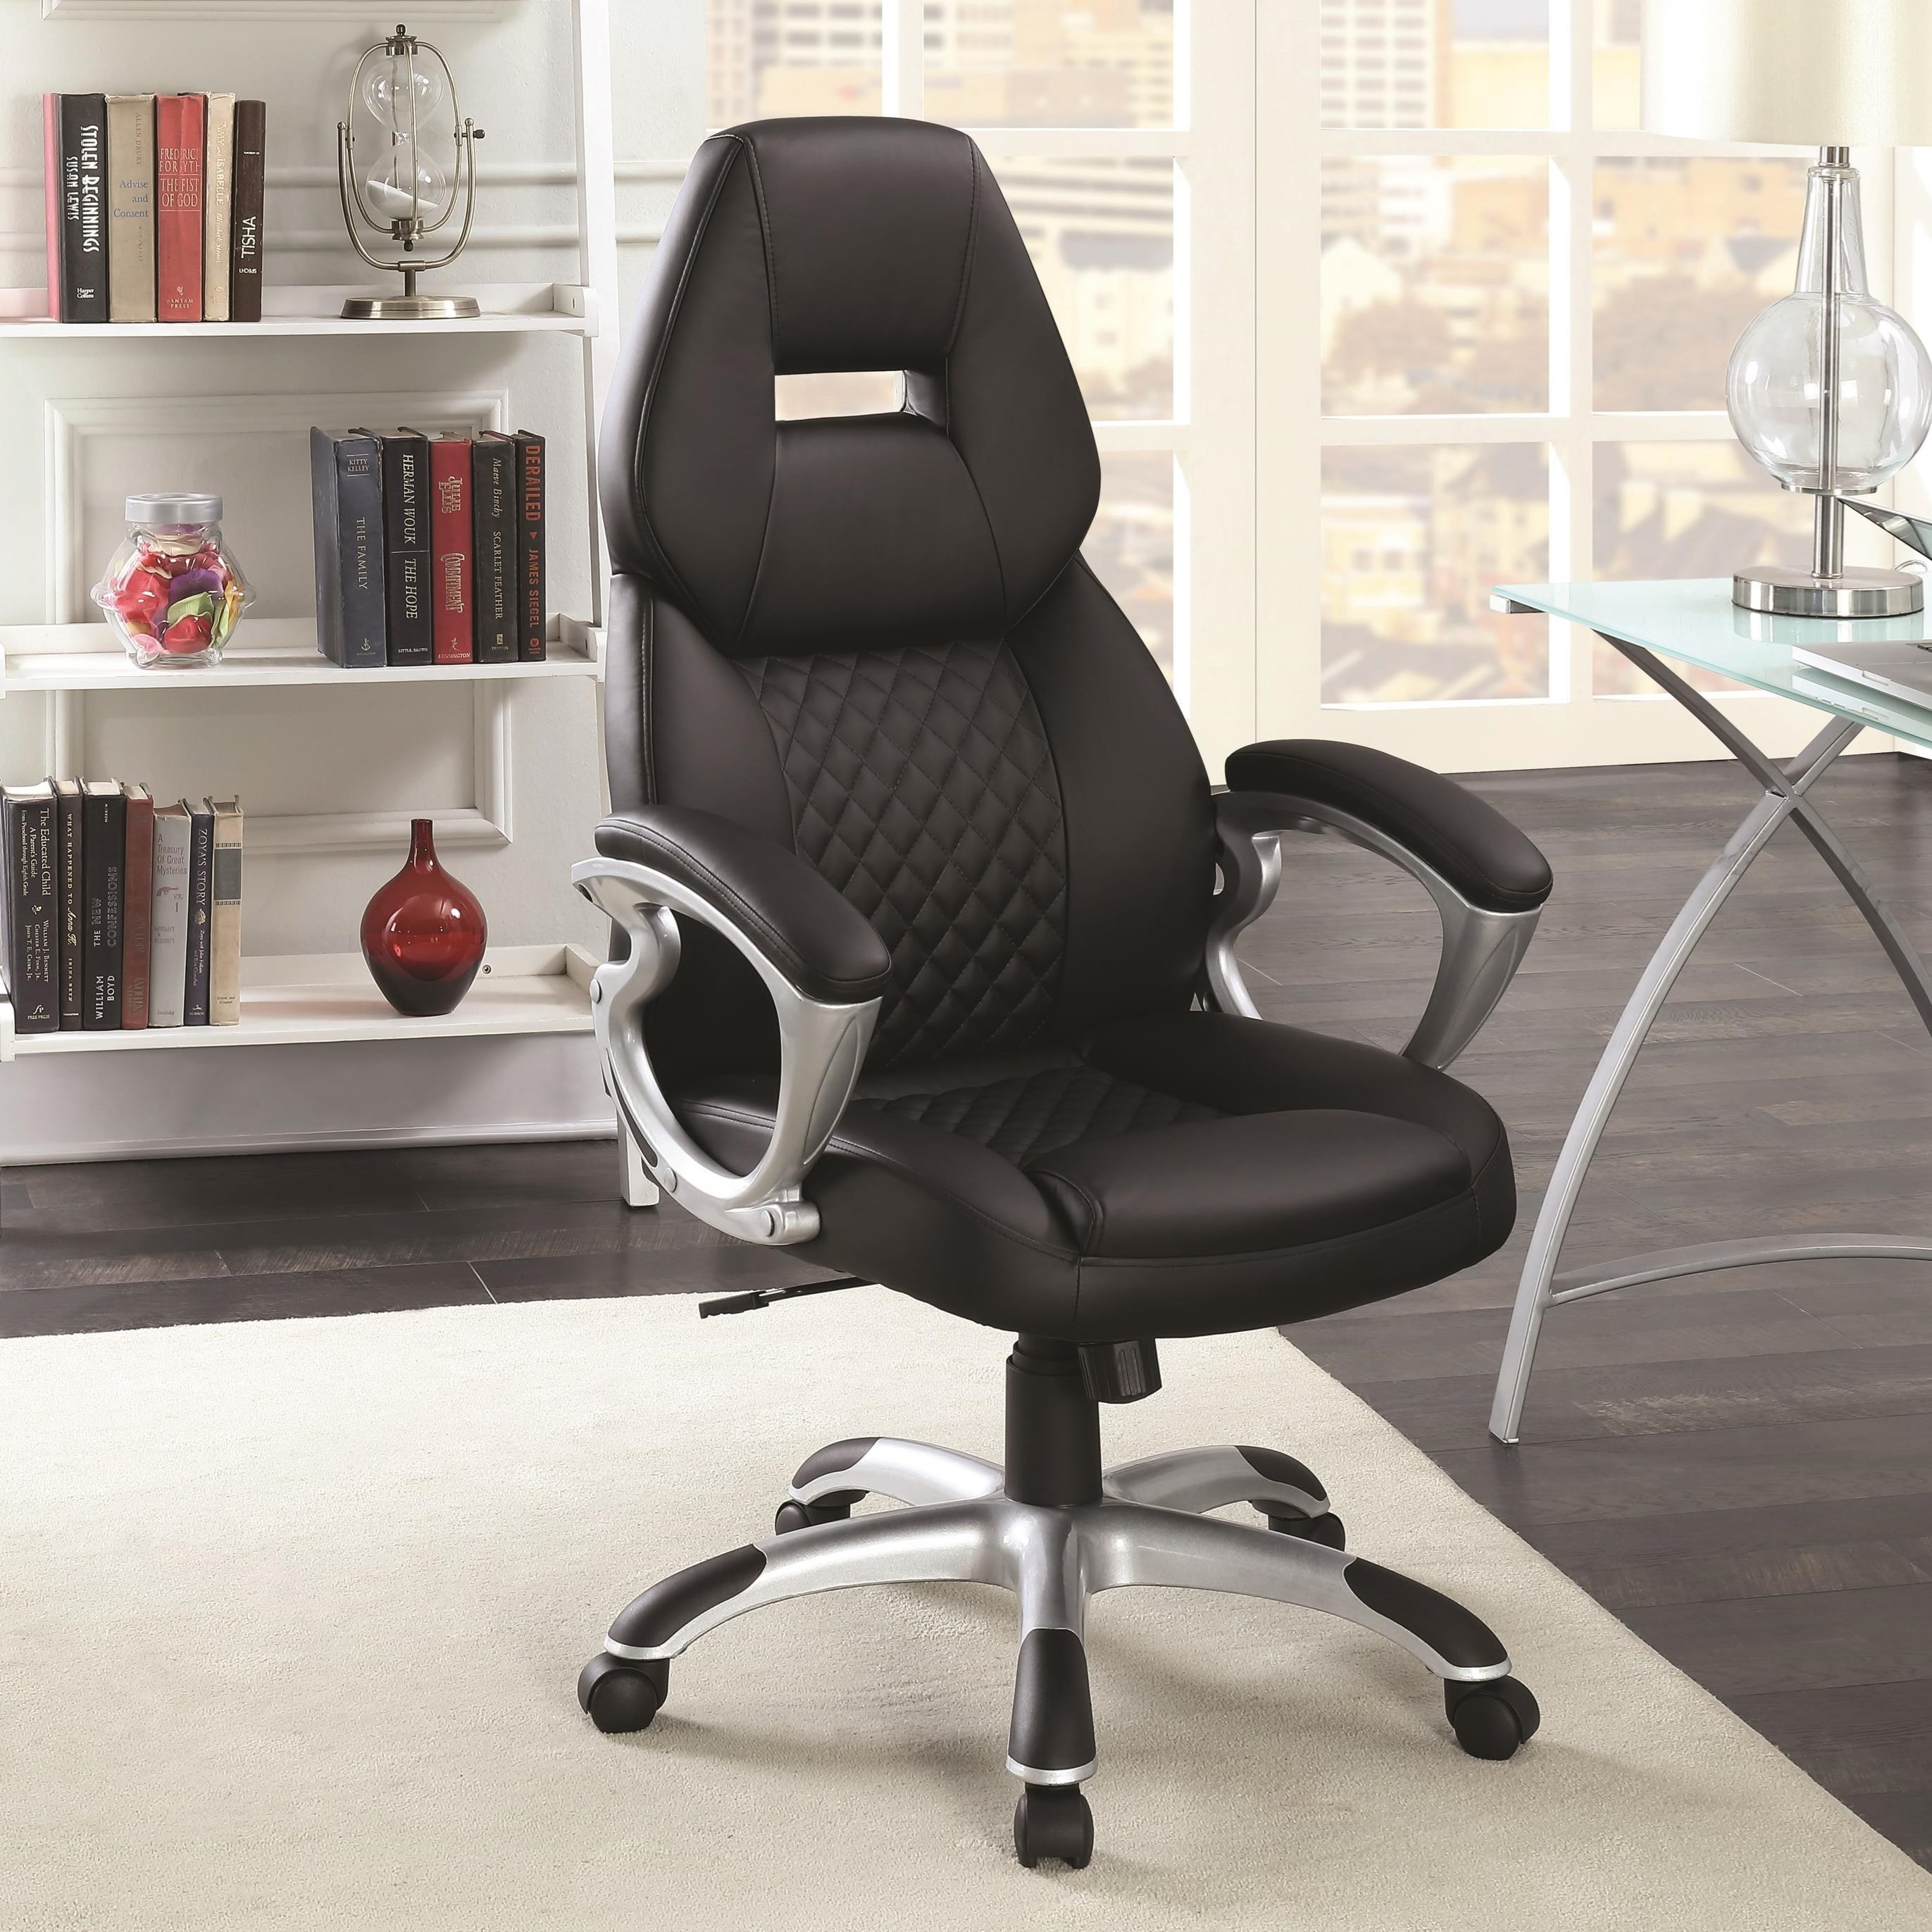 Work Chair Office Chairs High Back Office Chair By Coaster At Dunk Bright Furniture